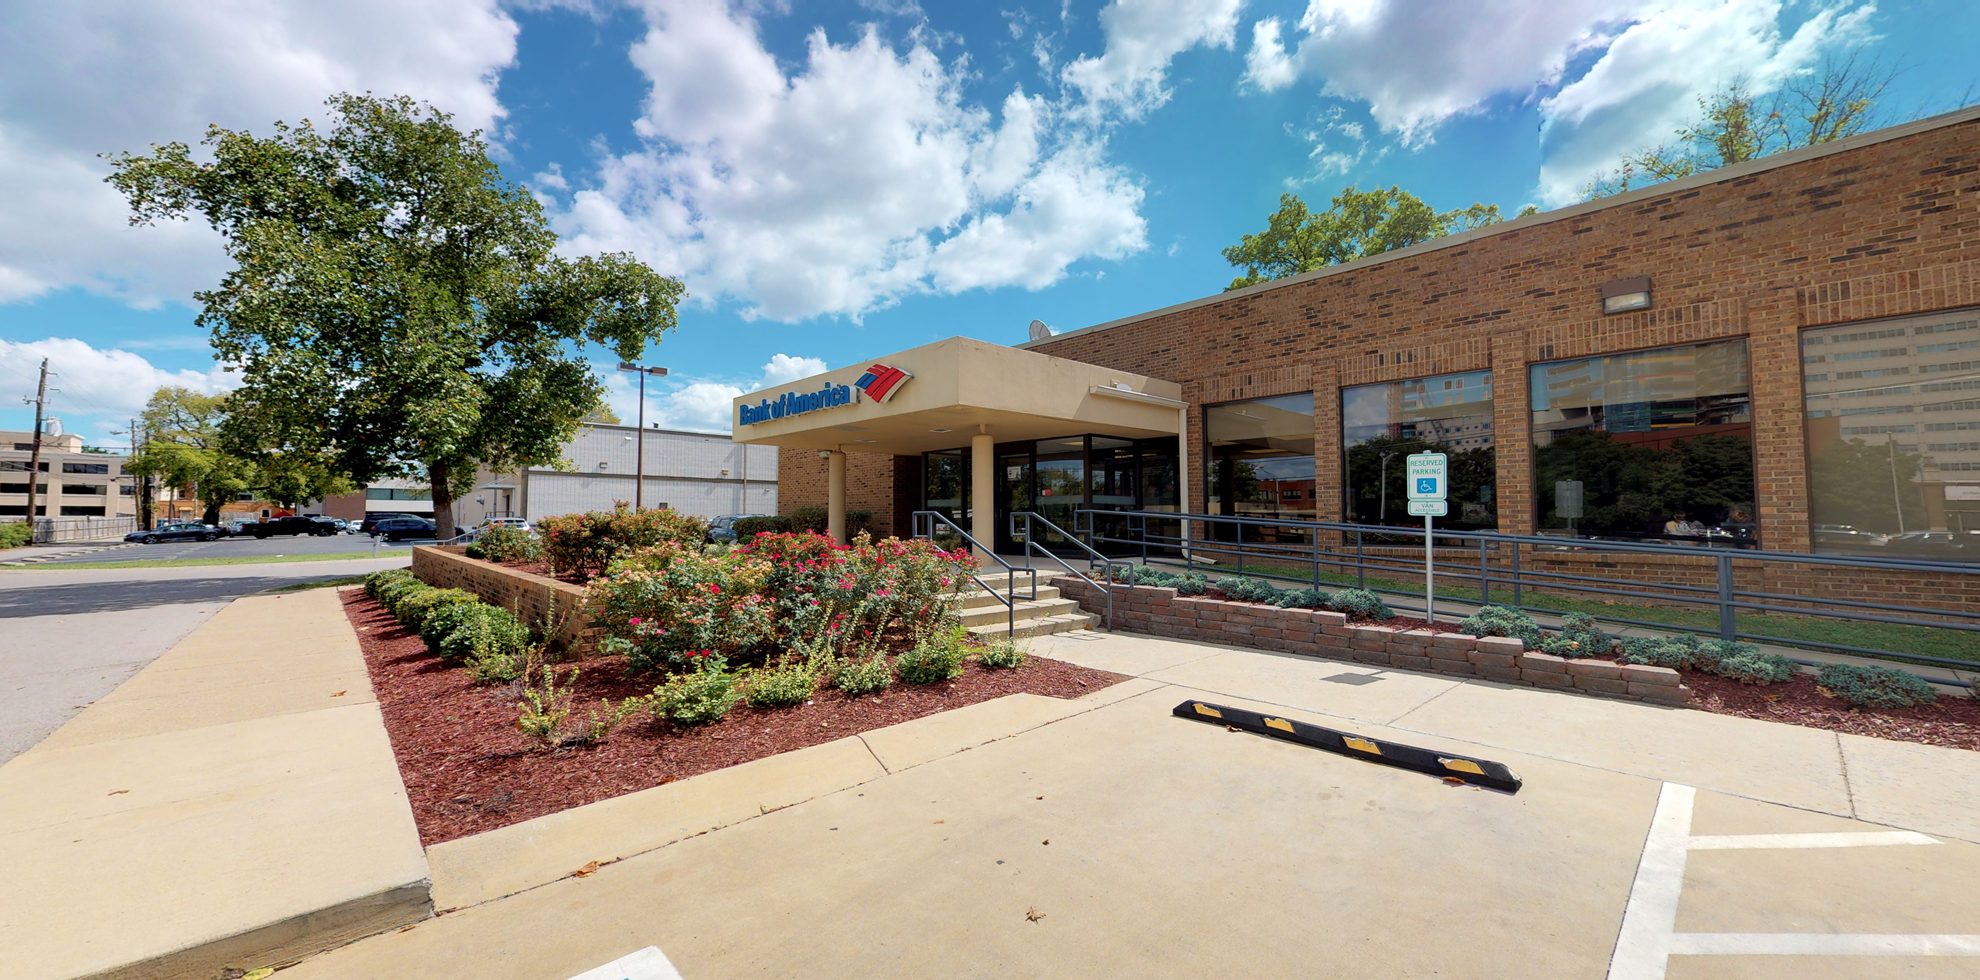 Bank of America financial center with drive-thru ATM | 2121 Blakemore Ave, Nashville, TN 37212